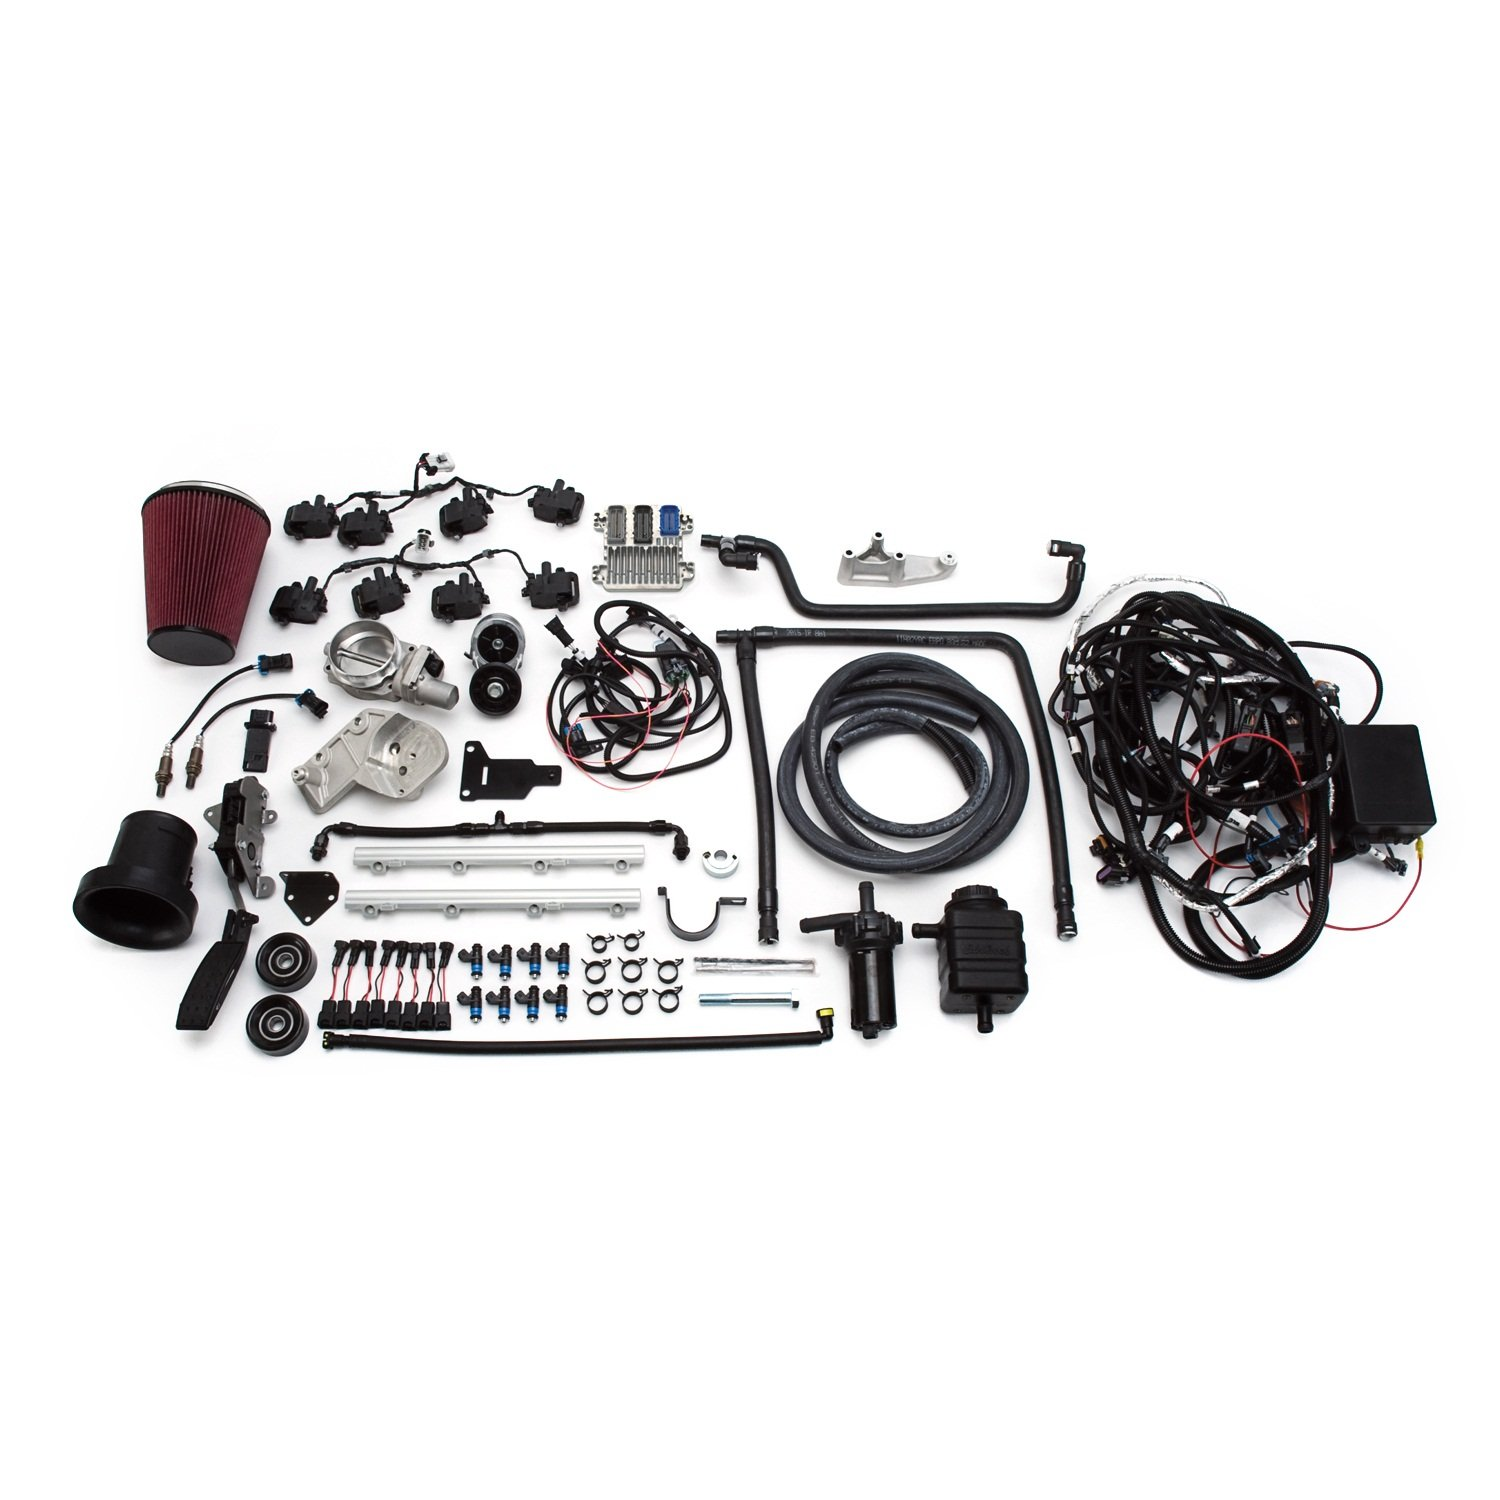 Edelbrock 46750 Supercharged LS 416 Crate Engine and Electronics LongBlock Incl. E-Force Supercharger/Engine Wiring Harness/ECU/Elect. Fuel Pedal/MAFS/ThrottleBody/Ign. Coils/Heated O2 Sensors Supercharged LS 416 Crate Engine and Electronics